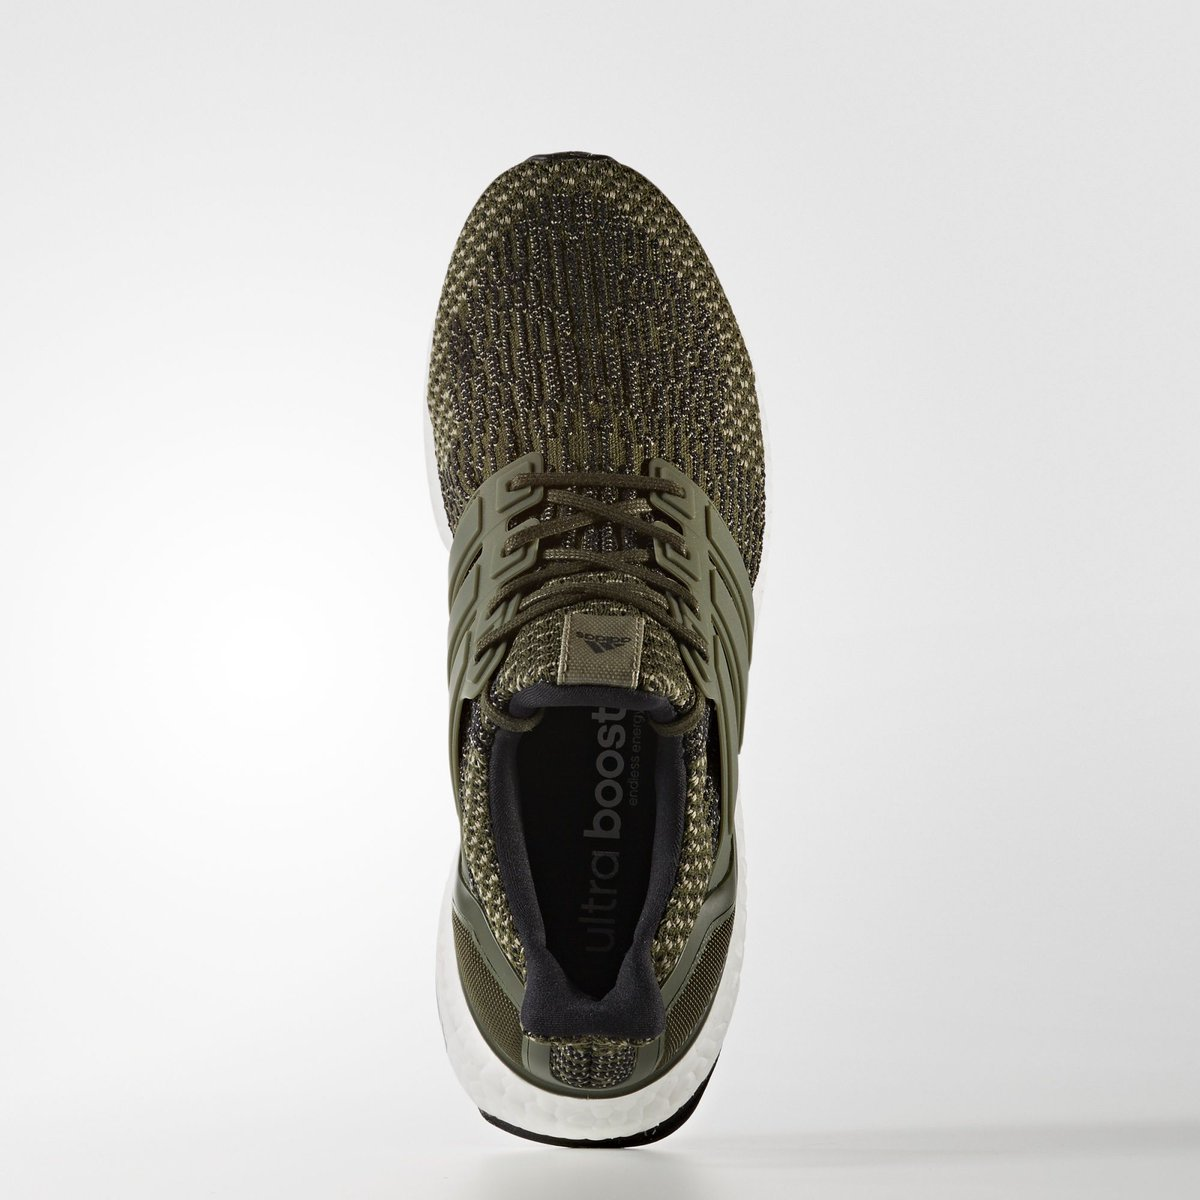 Adidas Ultra Boost 3.0 Ltd (BA 8924) Shelta